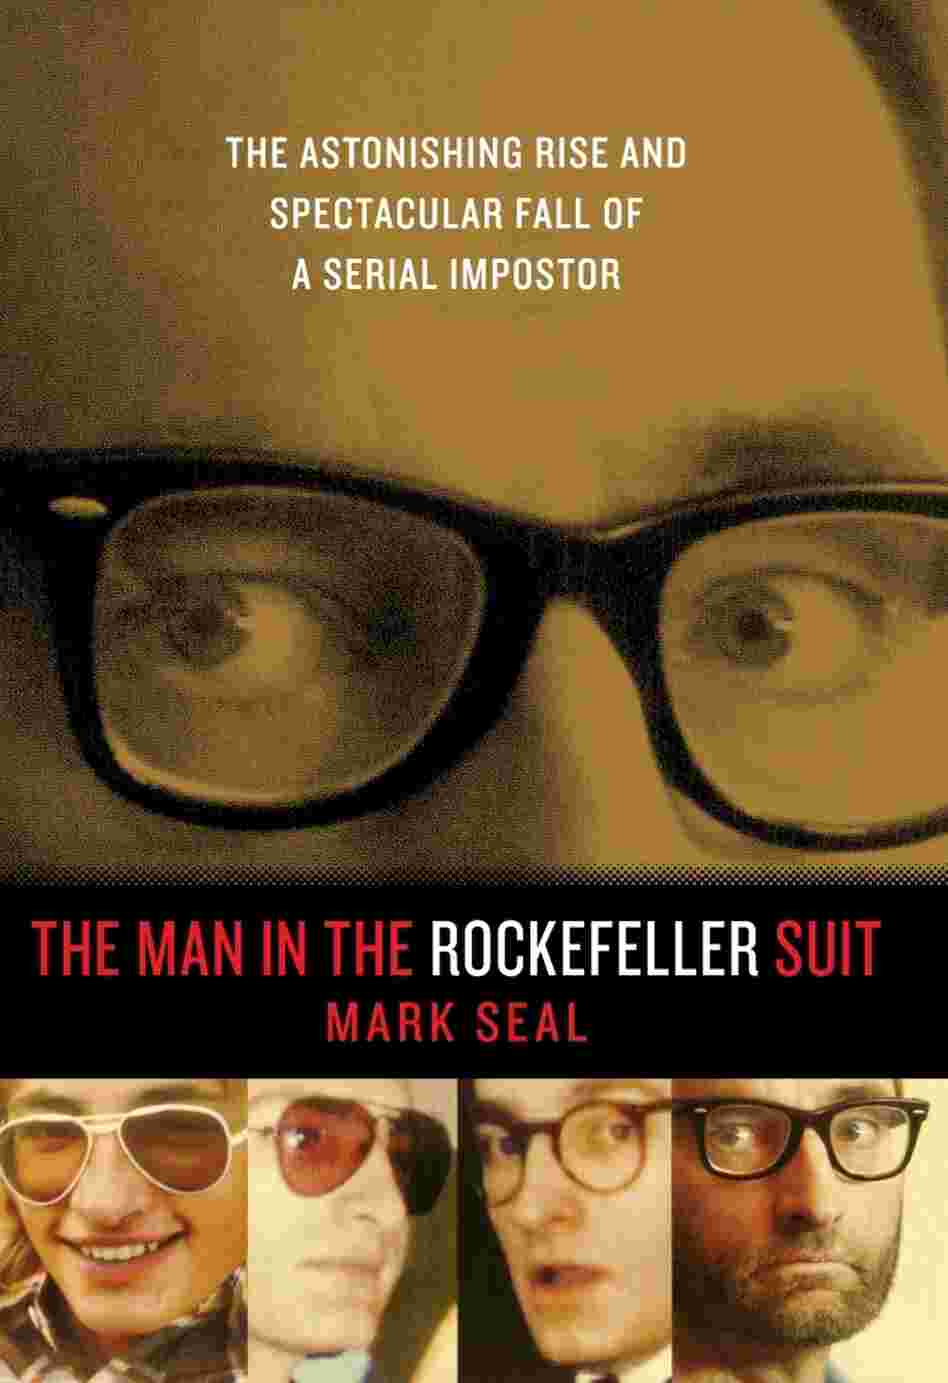 The Man in the Rockefeller Suit by Mark Seal.